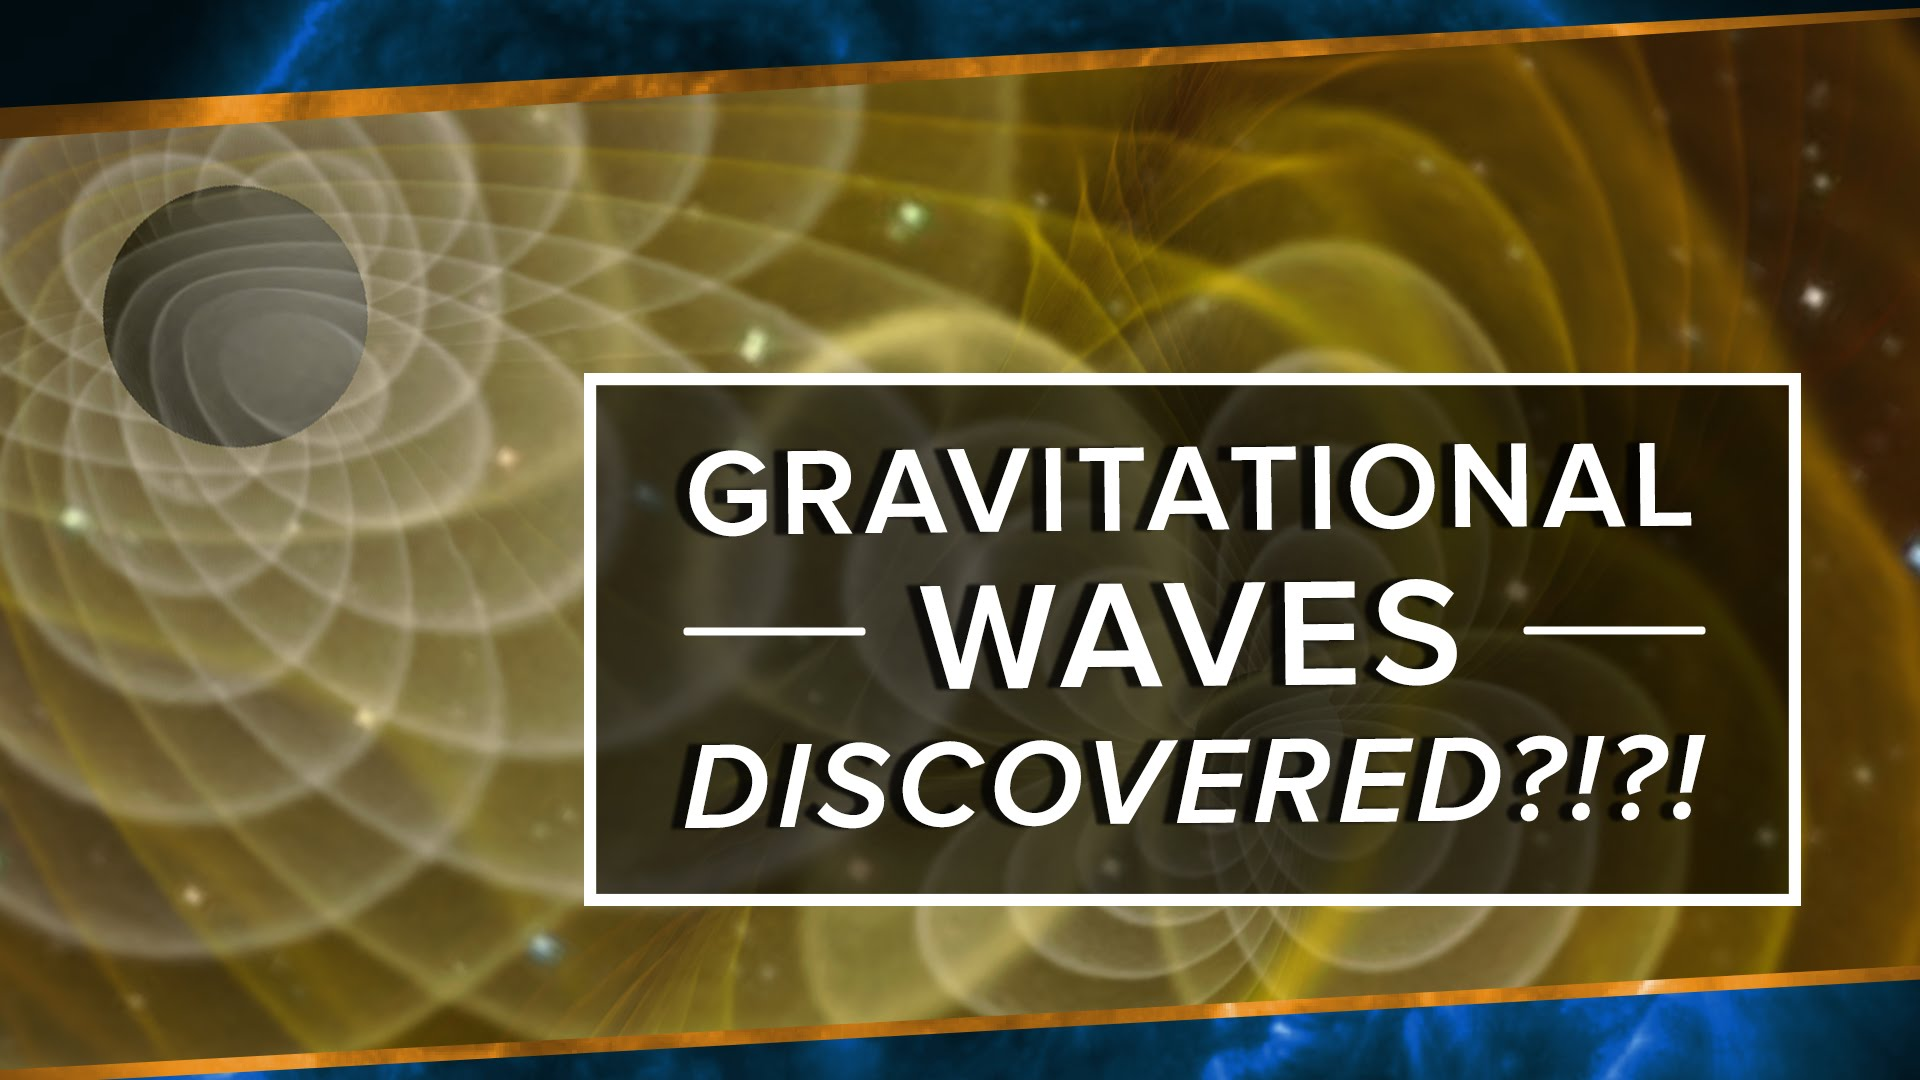 Have Gravitational Waves Been Discovered?!?